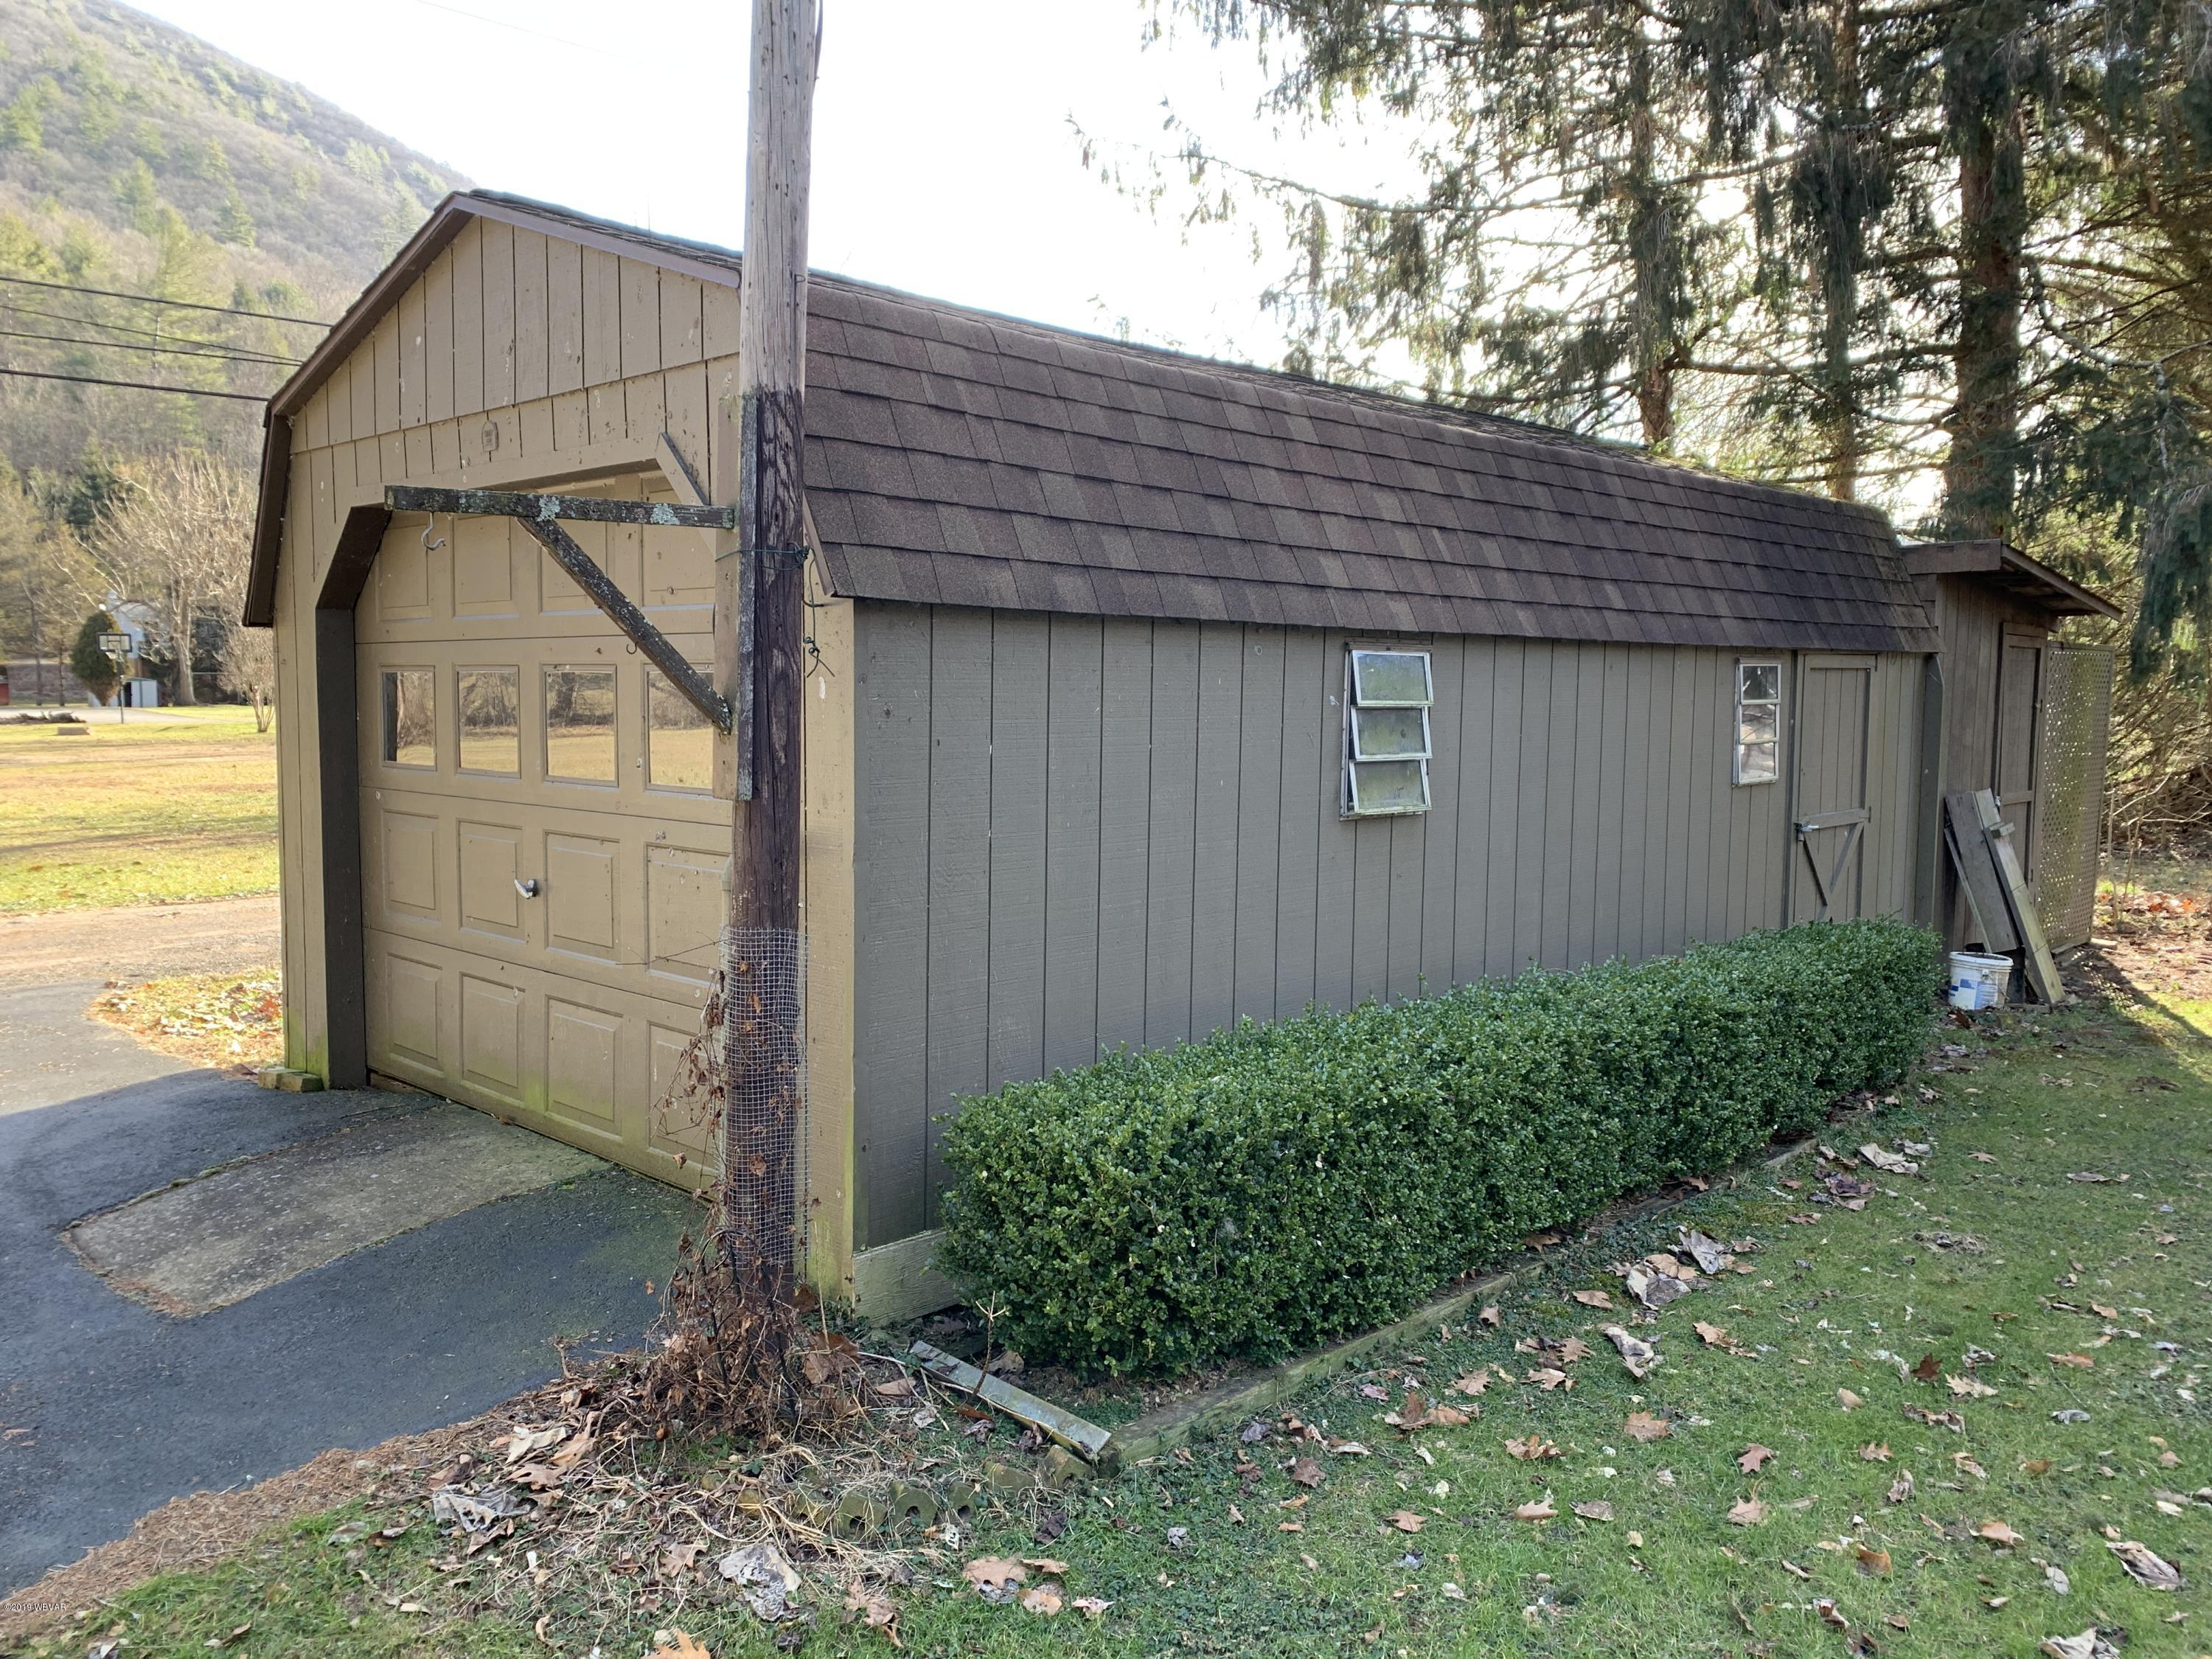 97 BIERLY DRIVE,Waterville,PA 17776,4 Bedrooms Bedrooms,3 BathroomsBathrooms,Residential,BIERLY,WB-86203